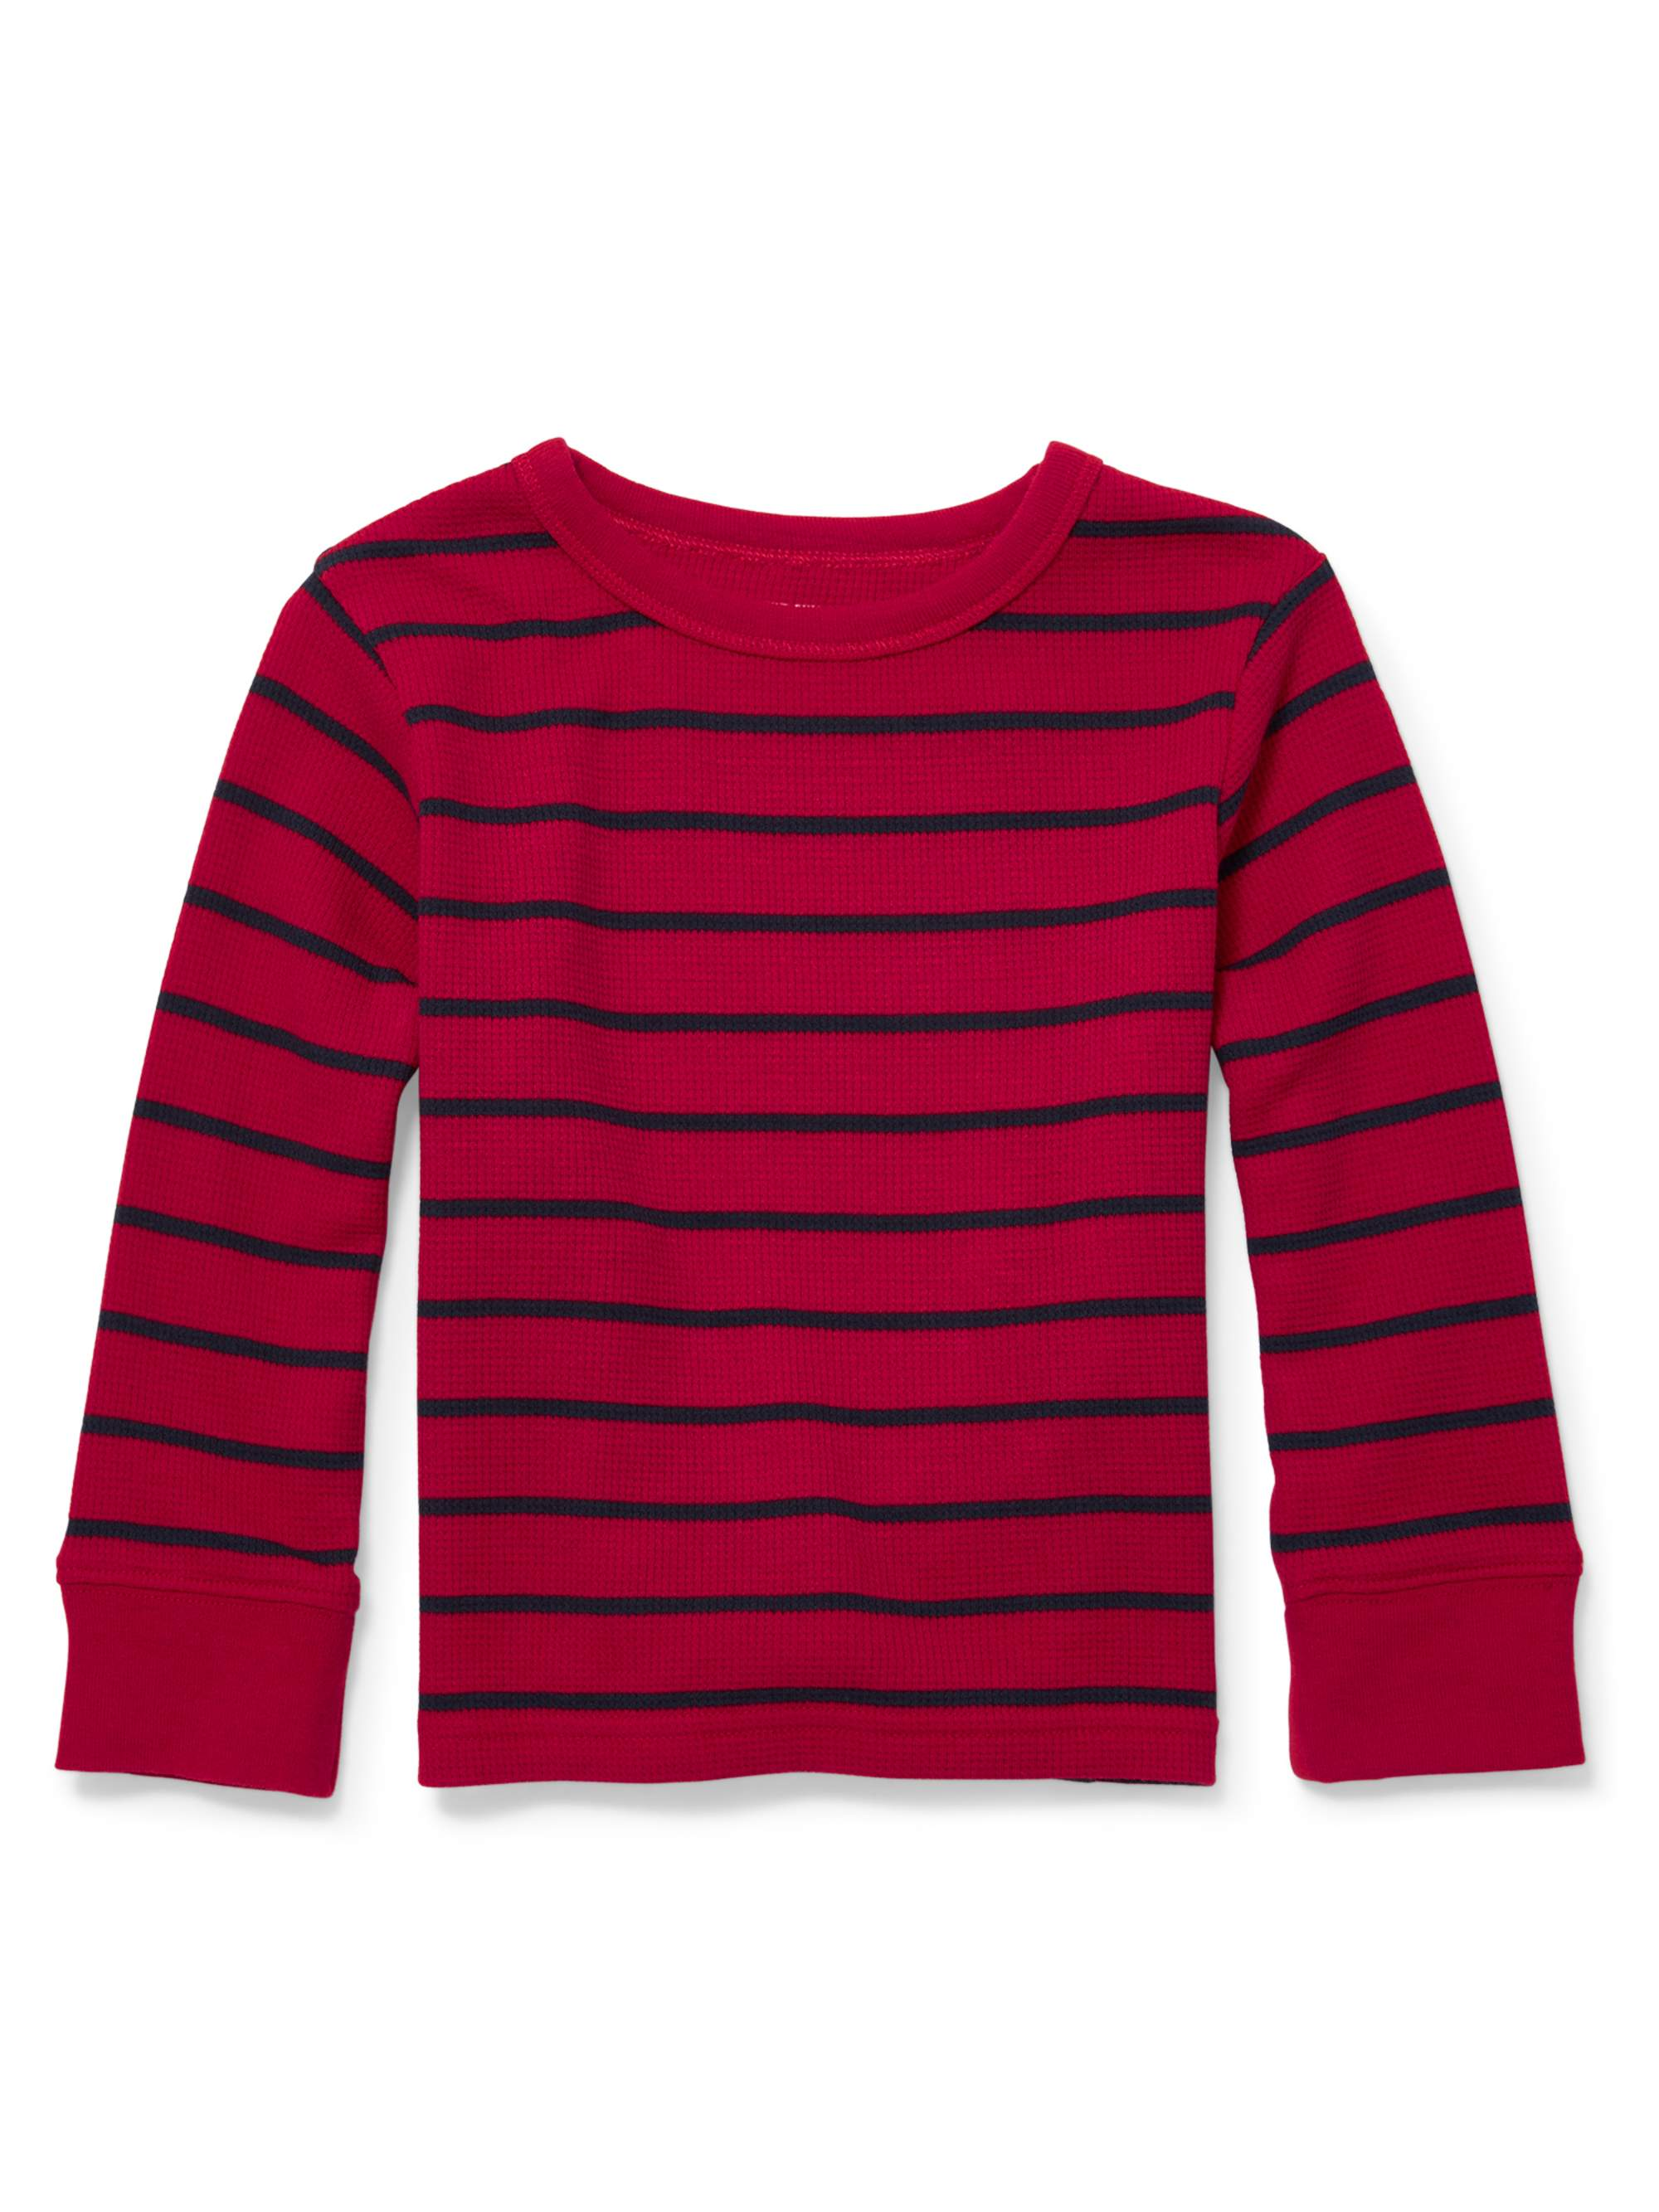 9e8e20d6d The Children s Place - Baby And Toddler Boys Long Sleeve Striped ...